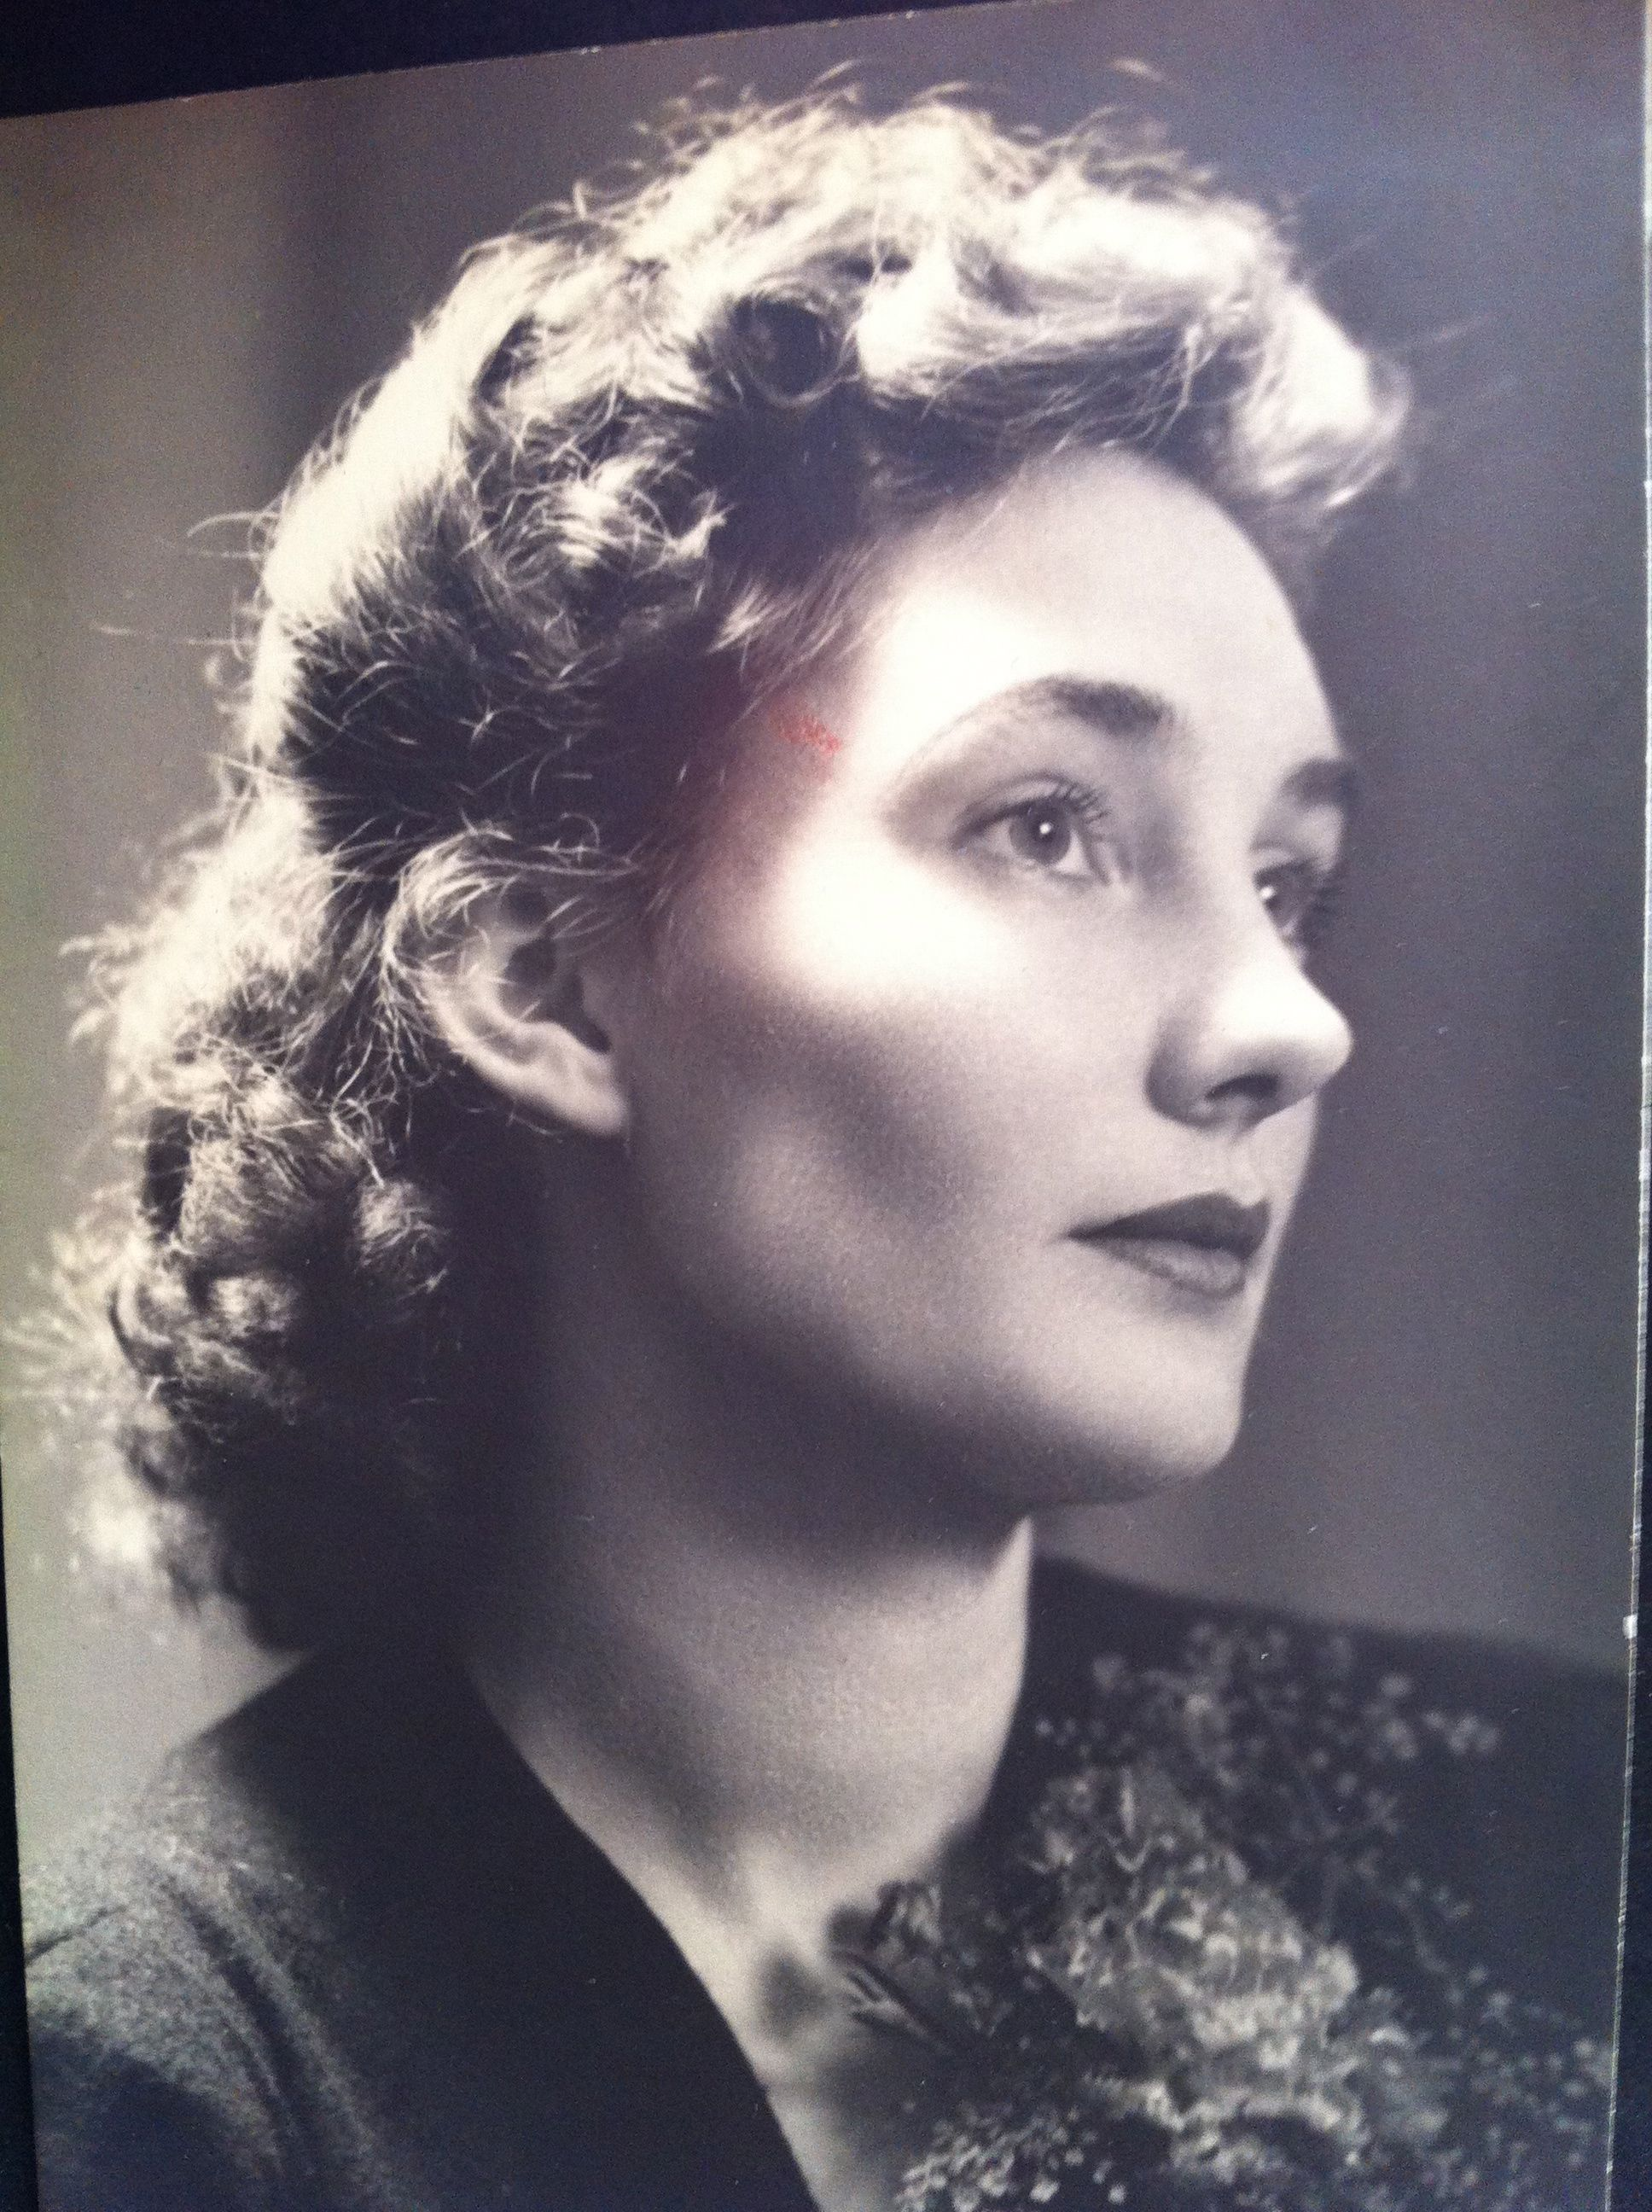 Amelia - a beauty of yesteryear